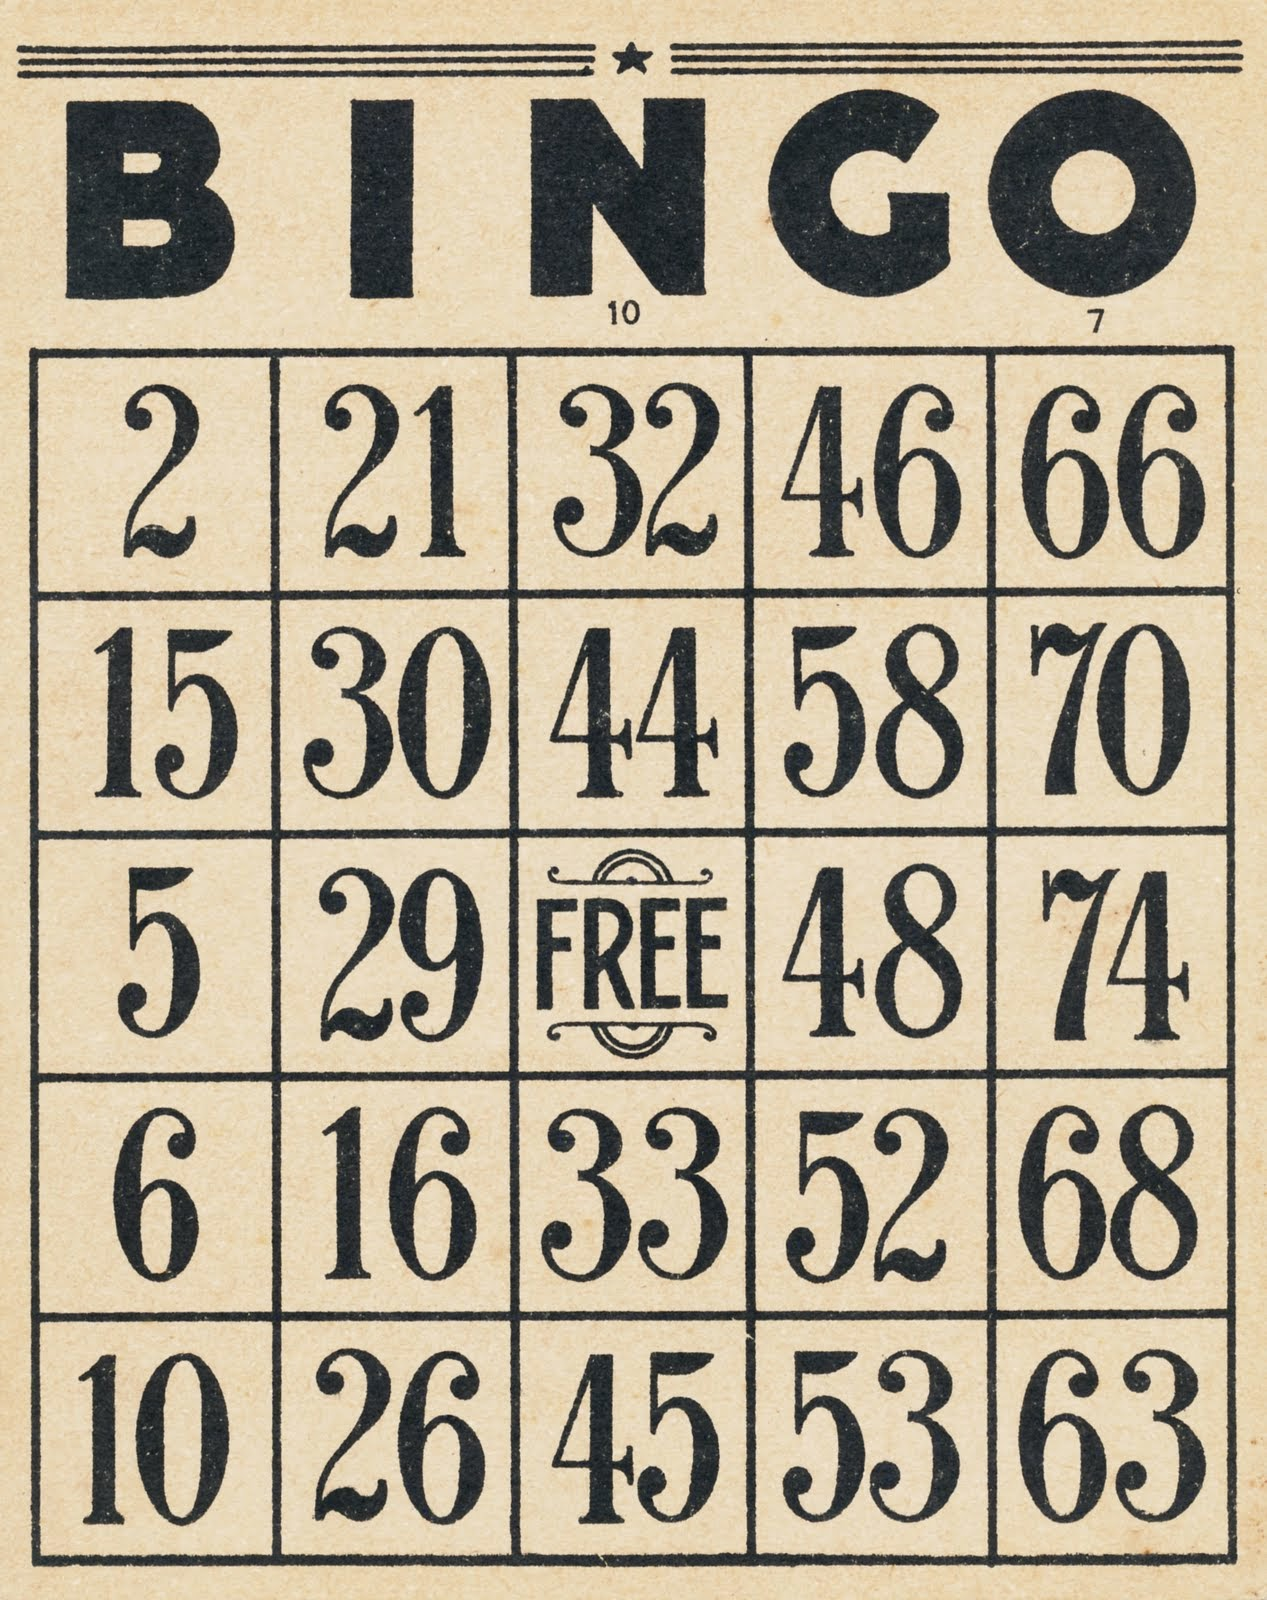 It's just a picture of Astounding Sample Bingo Card